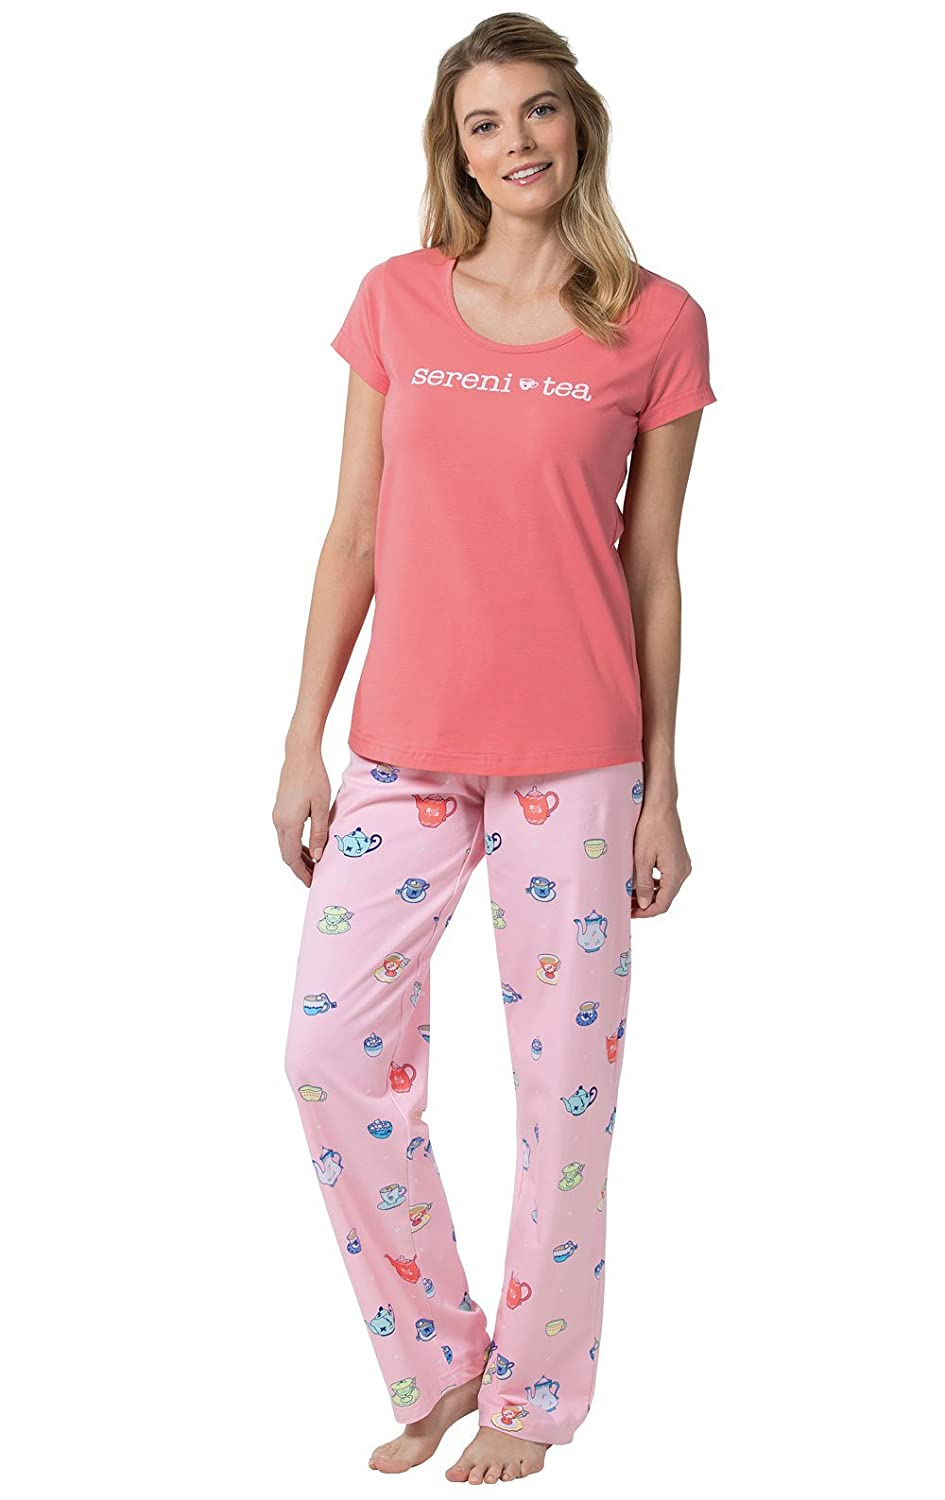 5ec7c40872 PajamaGram Sereni-Tea Women s Pajamas and Short-Sleeved Top